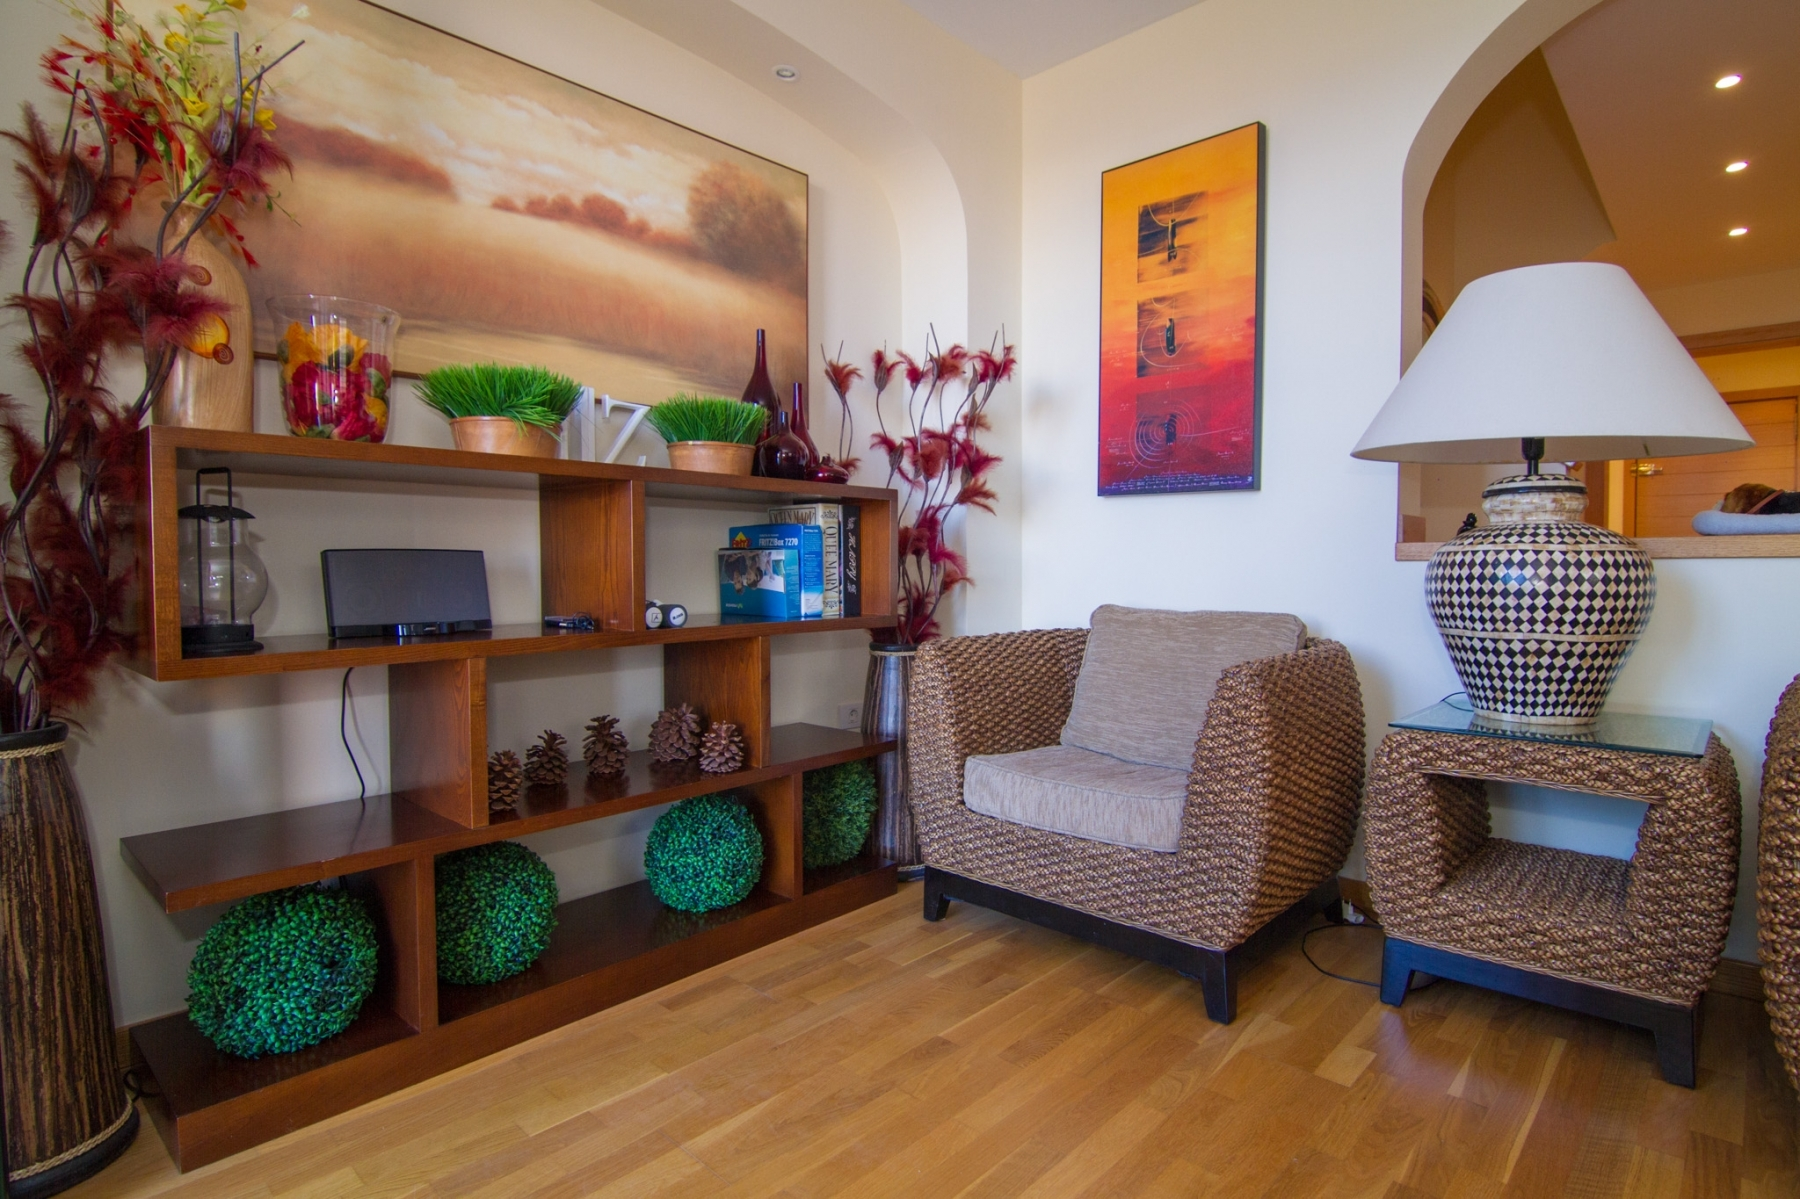 Properties for Sale in Tenerife, Canary Islands, Spain | SylkWayStar Real Estate. Luxury 3 bedrooms townhouse on the first line - San Blas . Image-22467